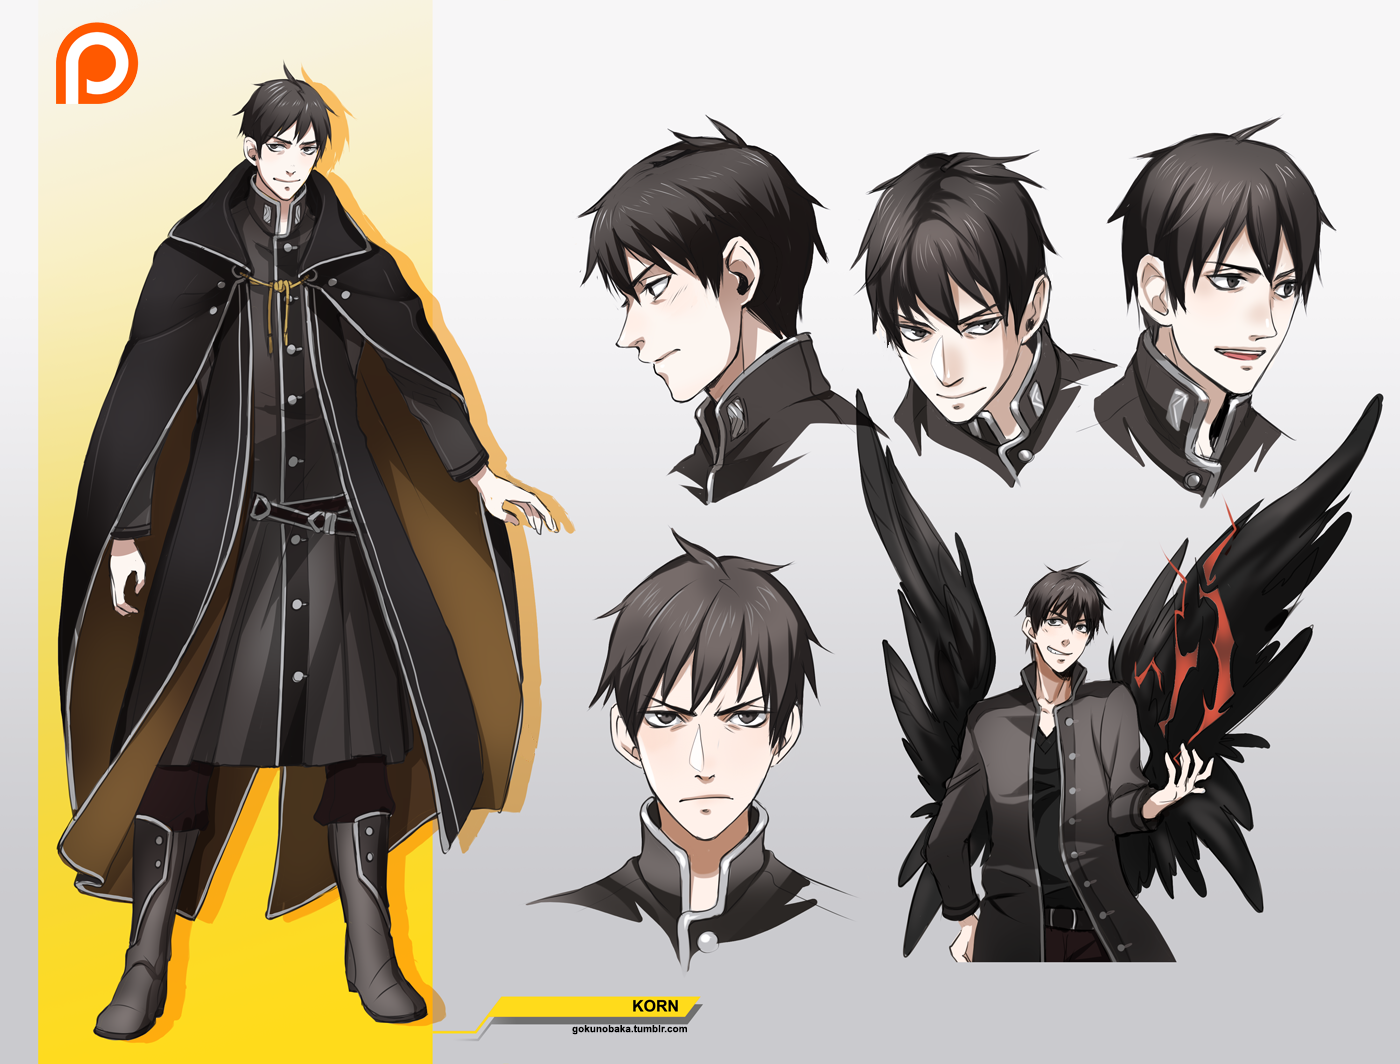 Design My Anime Character : Korn character design by goku no baka on deviantart